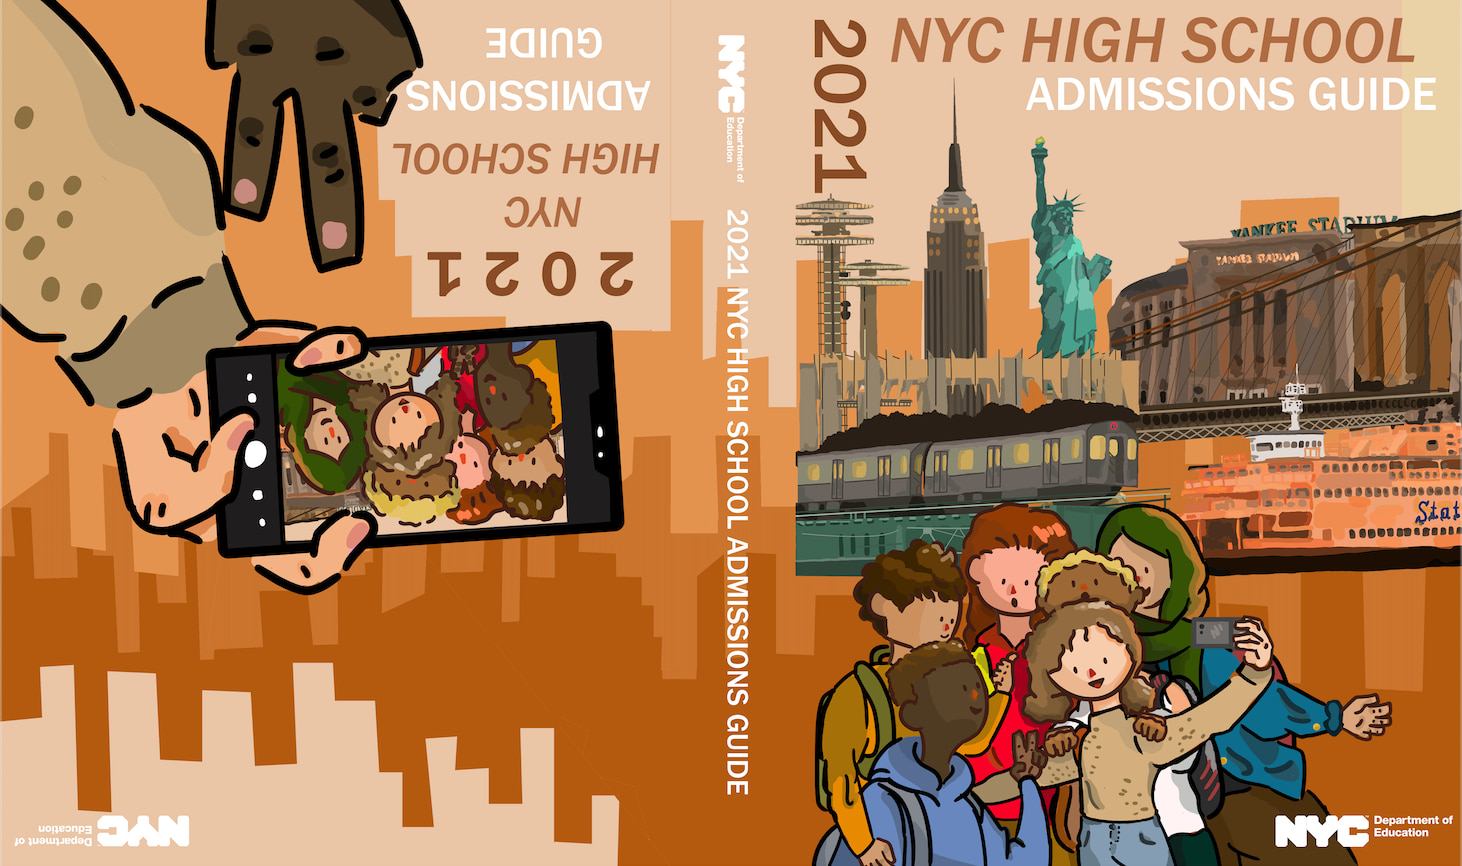 This cover design was the grand prize winner of the 2020 Cover Design Challenge. It shows the image of six students posing for a group selfie in front of NYC landmarks.